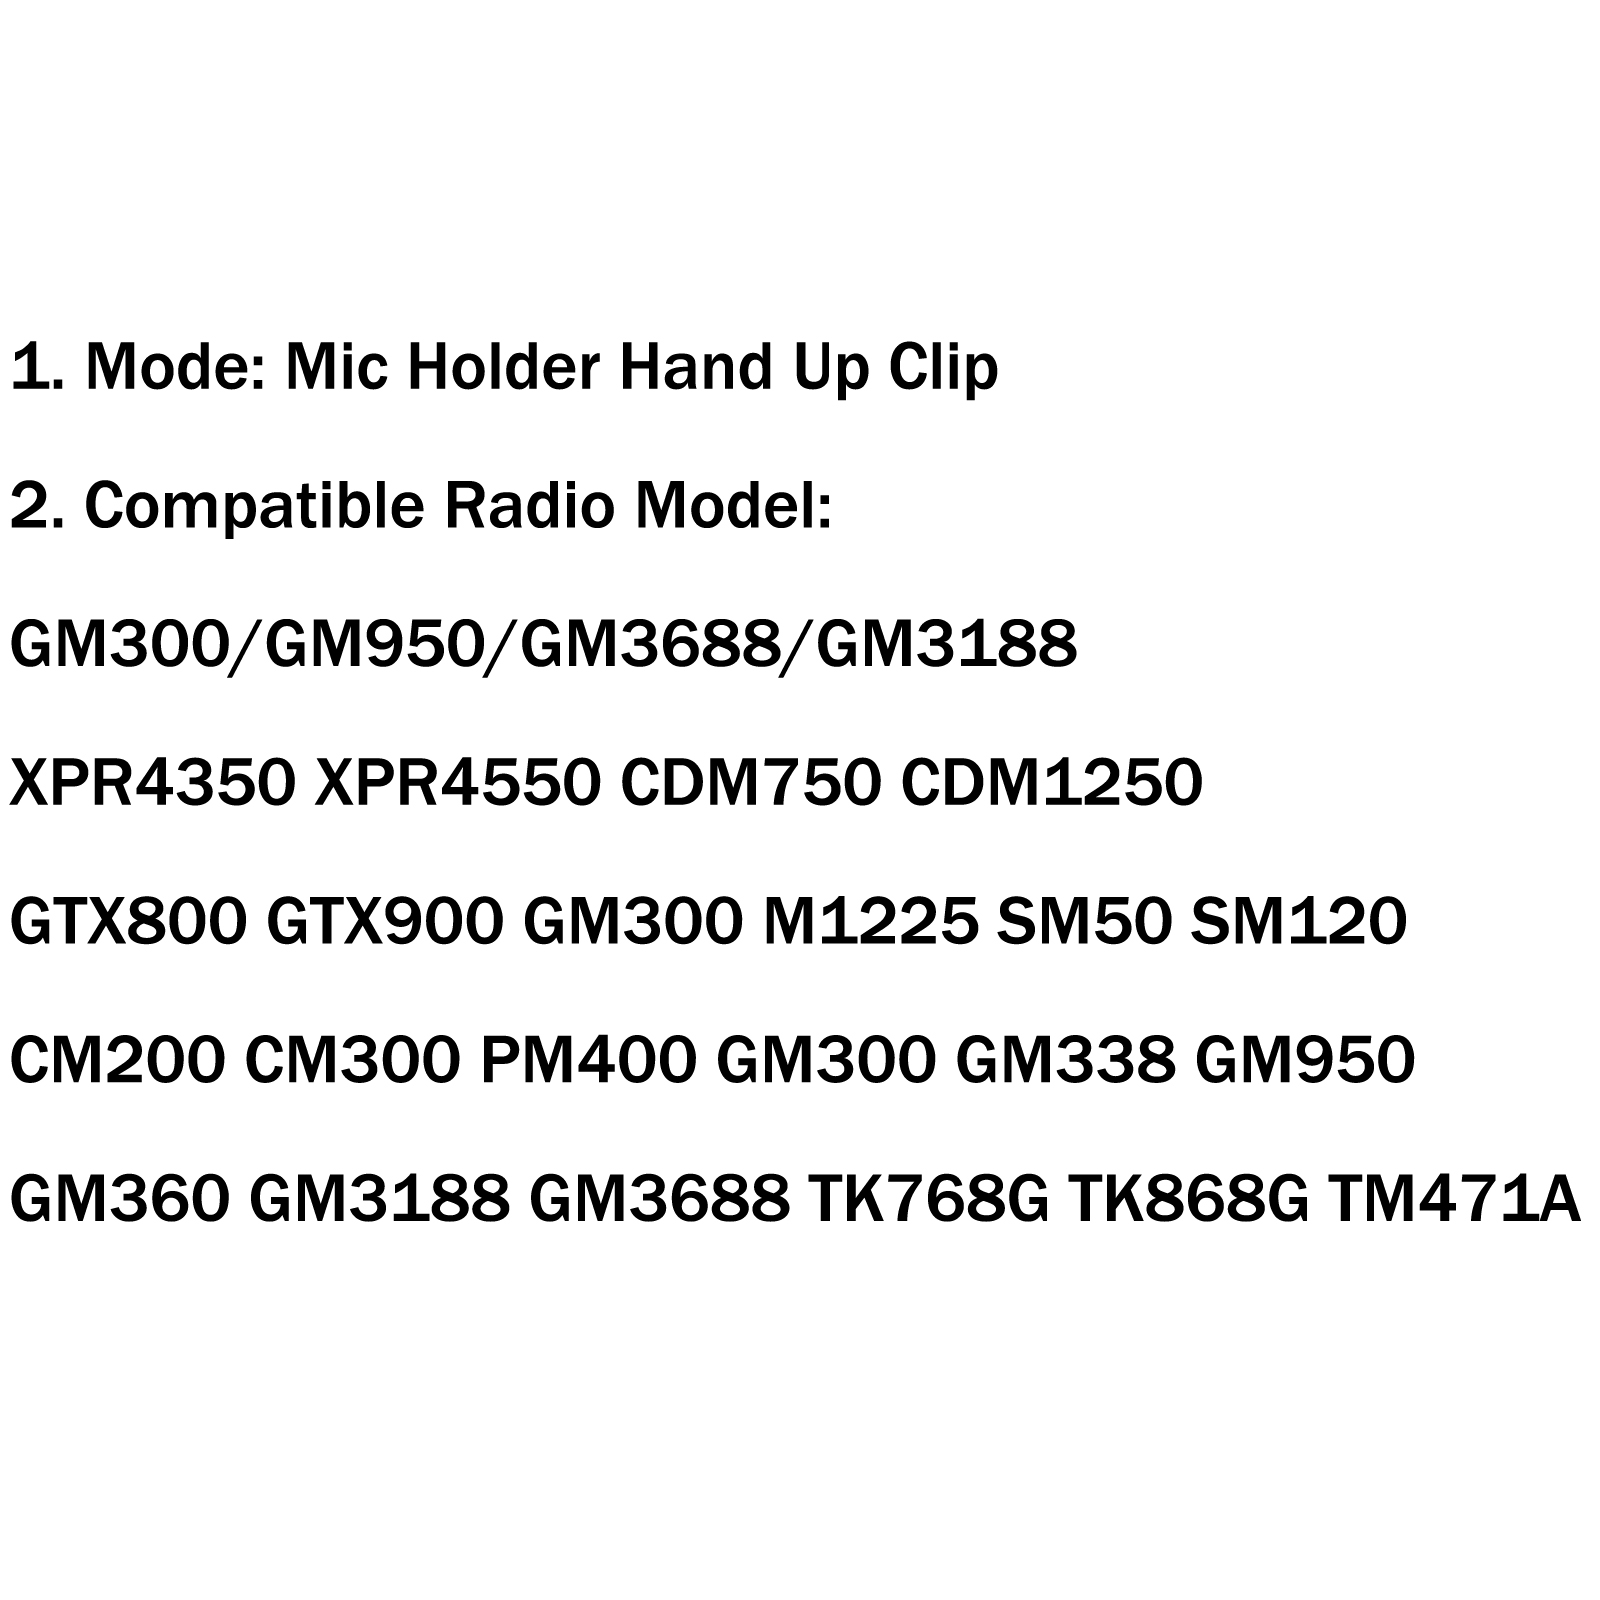 1x Mic Holder Hand Up Clip For Motorola Cb Kenwood Hln